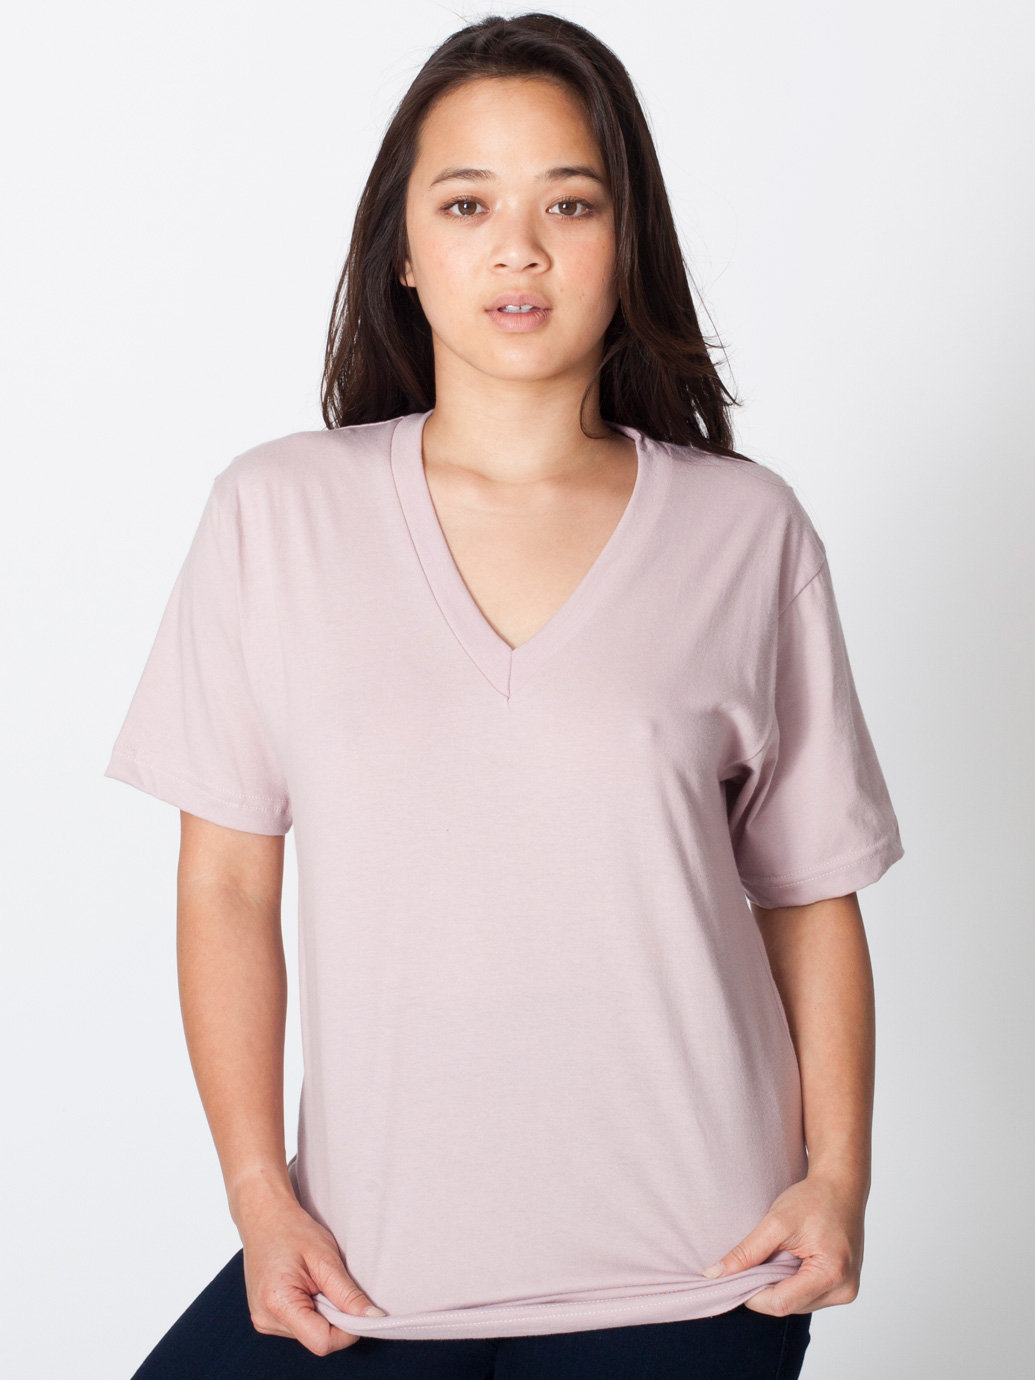 American apparel unisex fine jersey v neck t shirt in for American apparel men s fine jersey short sleeve tall t shirt